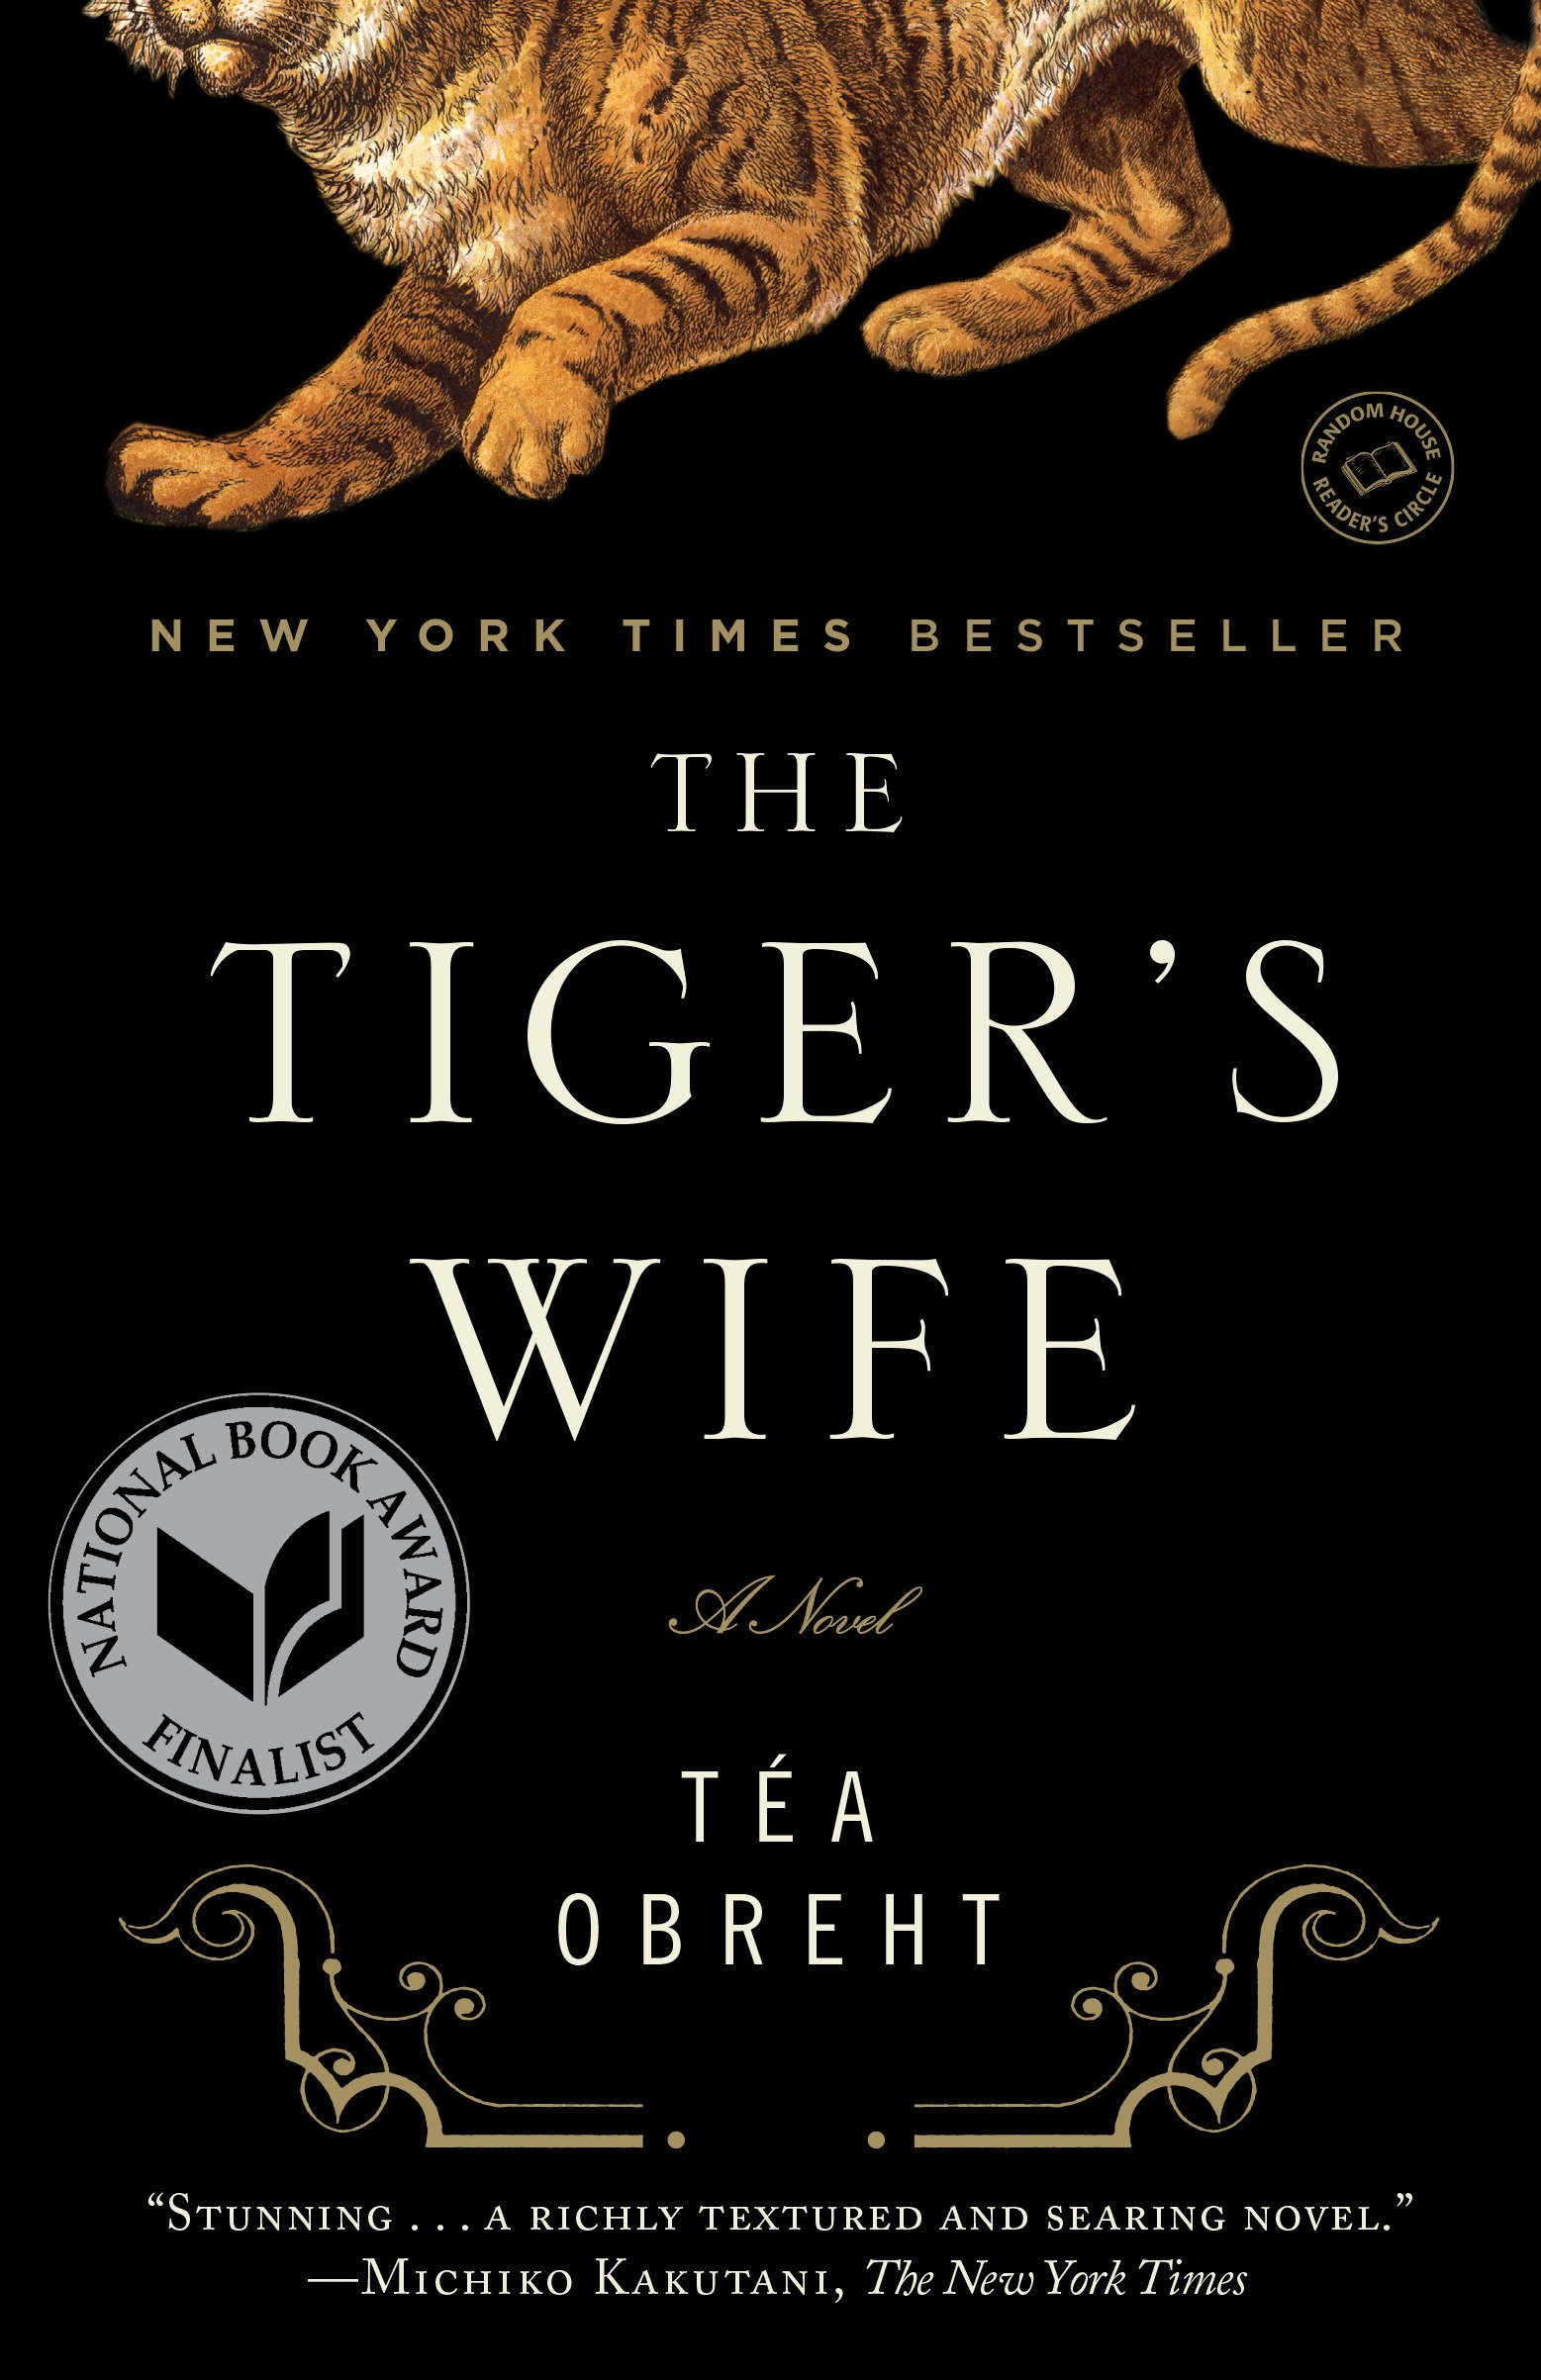 Amazon.com: The Tiger's Wife: A Novel (9780385343848): Obreht, Téa ...